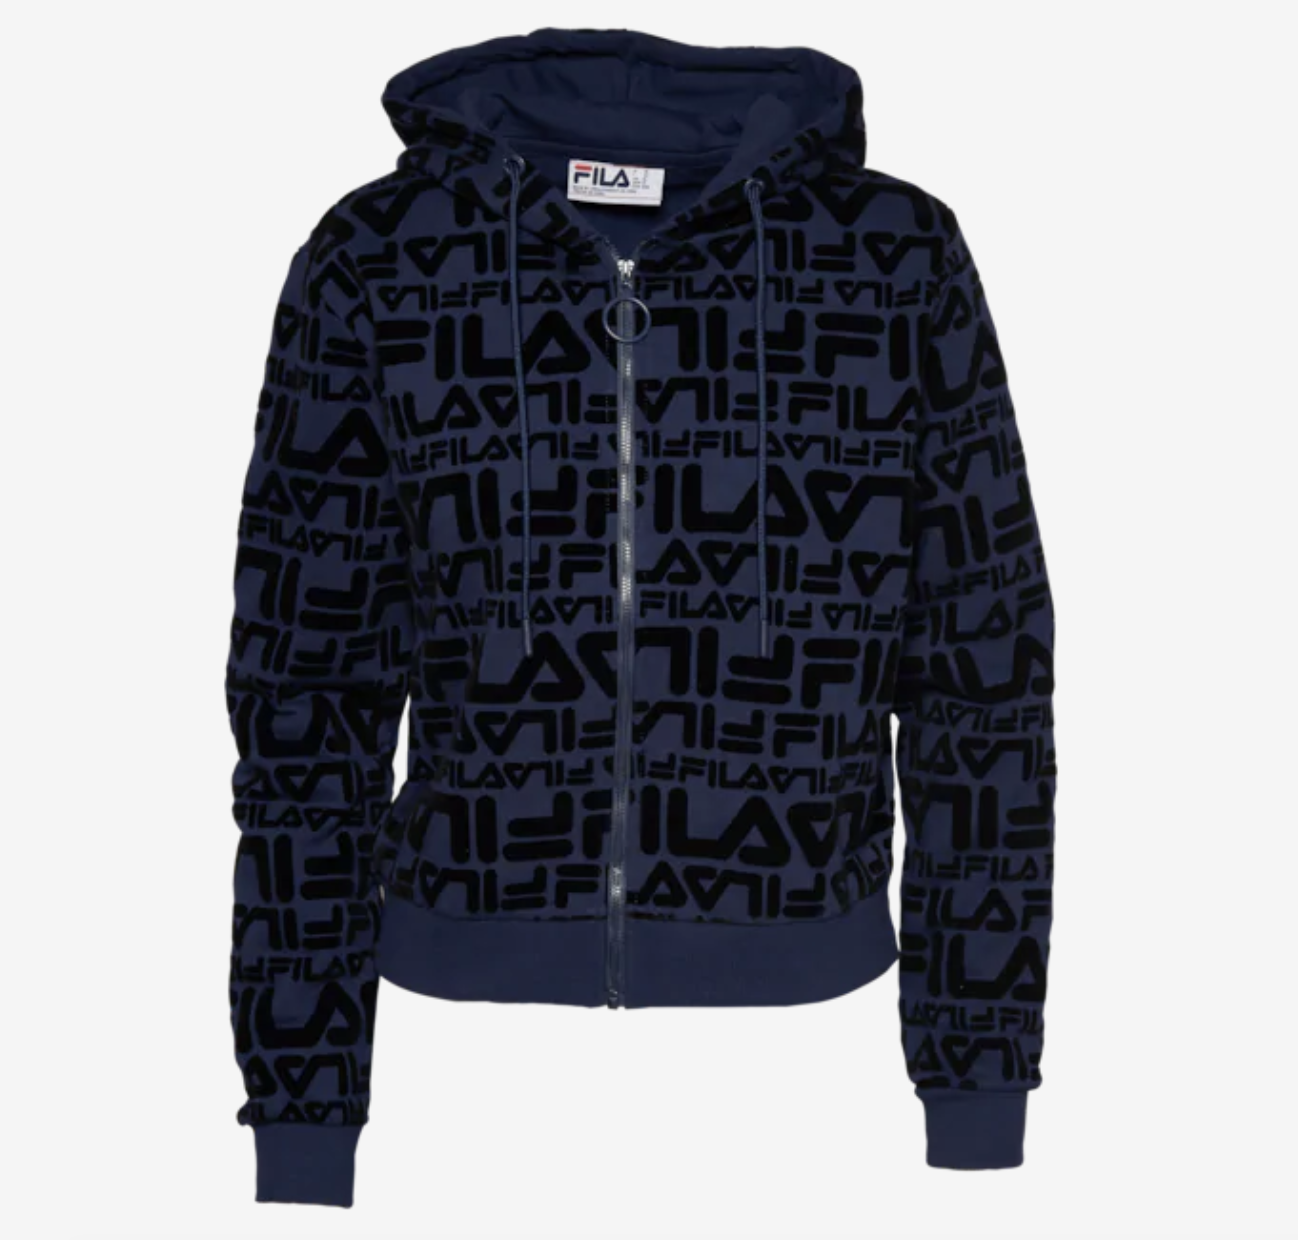 The navy hoodies with the word Fila printed all over it in black